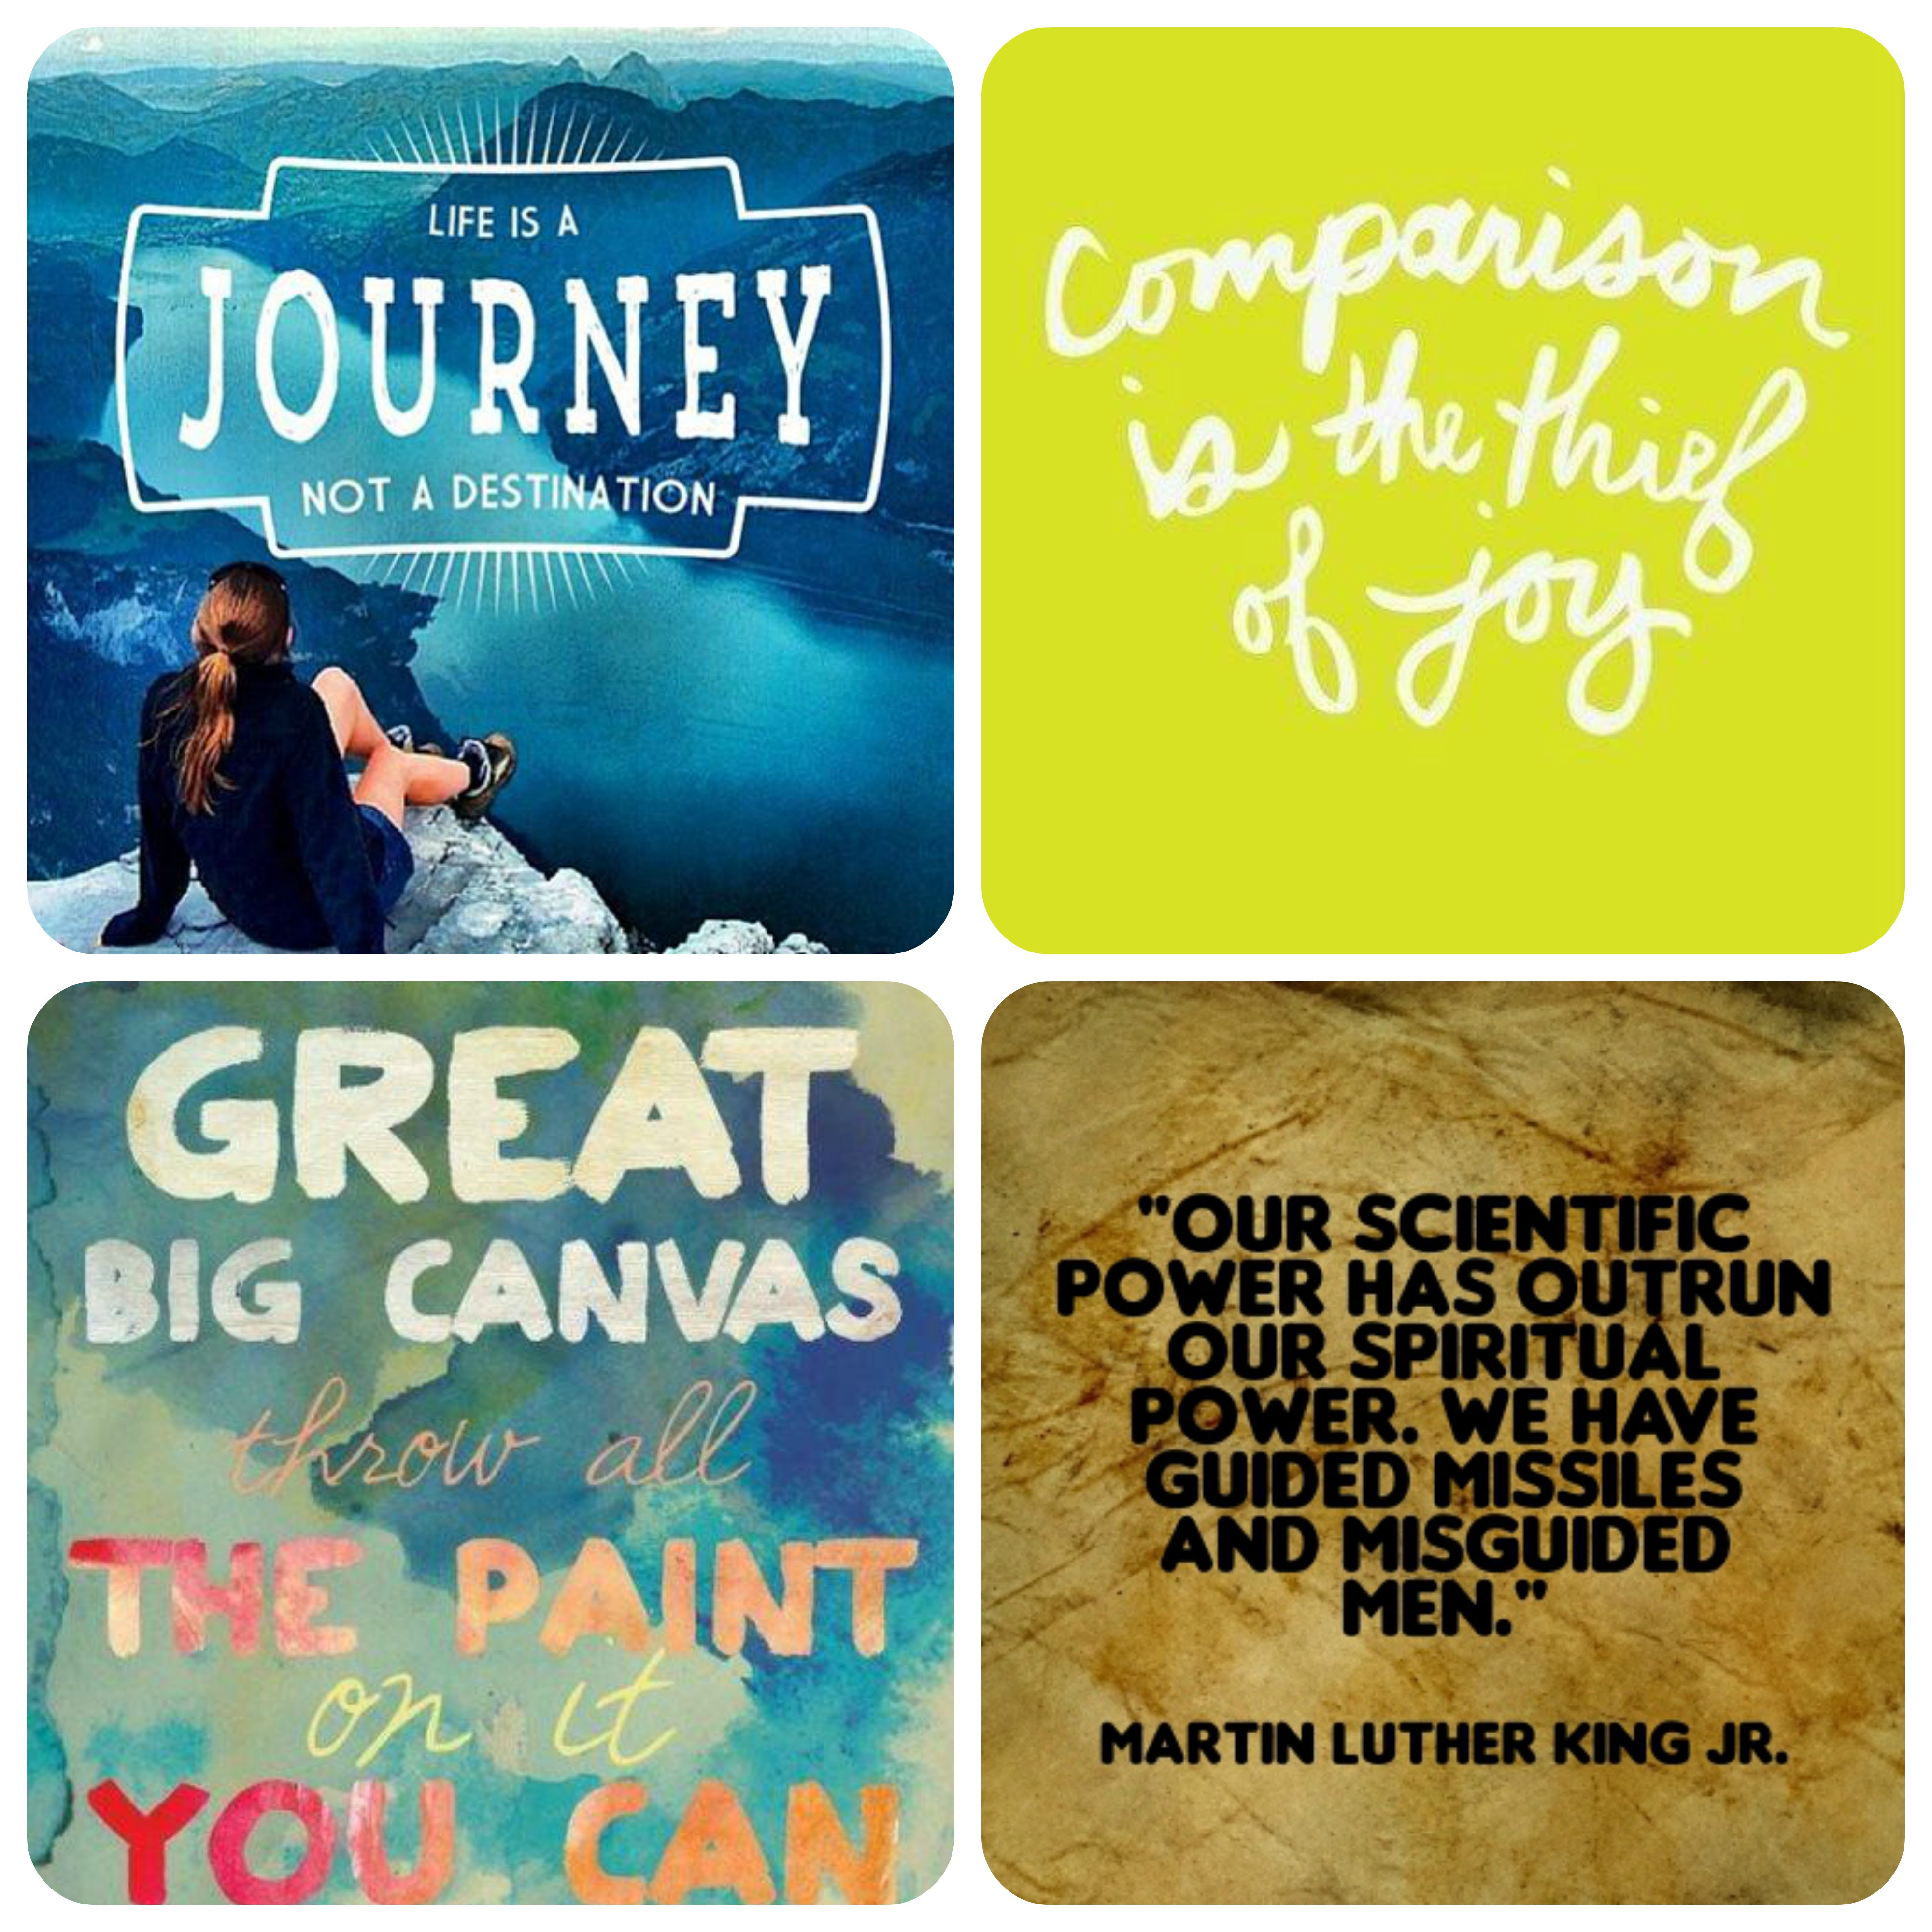 Give You 40,000 Inspirational Image Quotes and Many Free Bonus